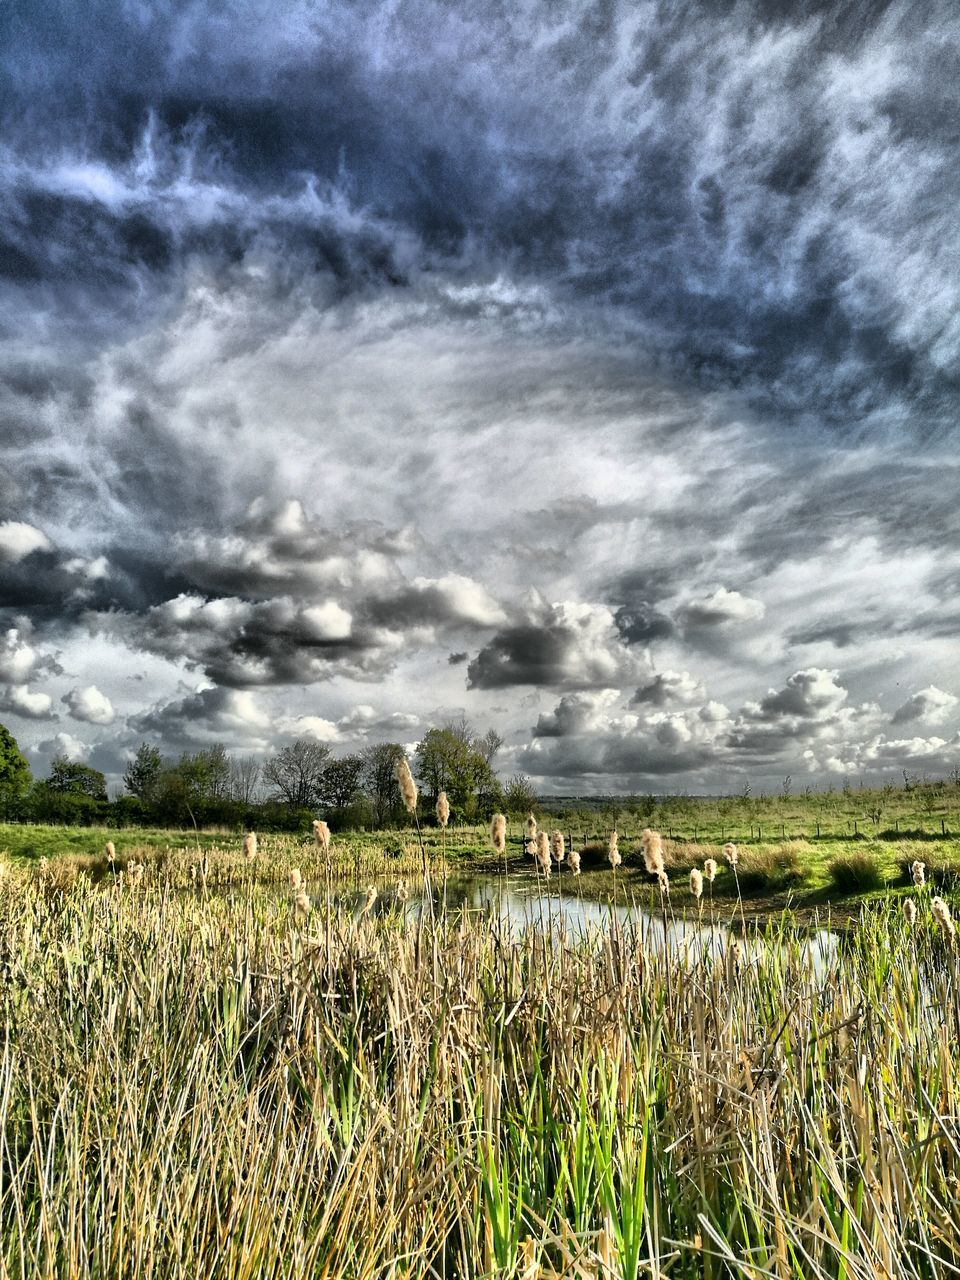 nature, agriculture, tranquility, sky, growth, tranquil scene, cloud - sky, field, scenics, beauty in nature, landscape, day, outdoors, crop, no people, rural scene, plant, grass, tree, storm cloud, cereal plant